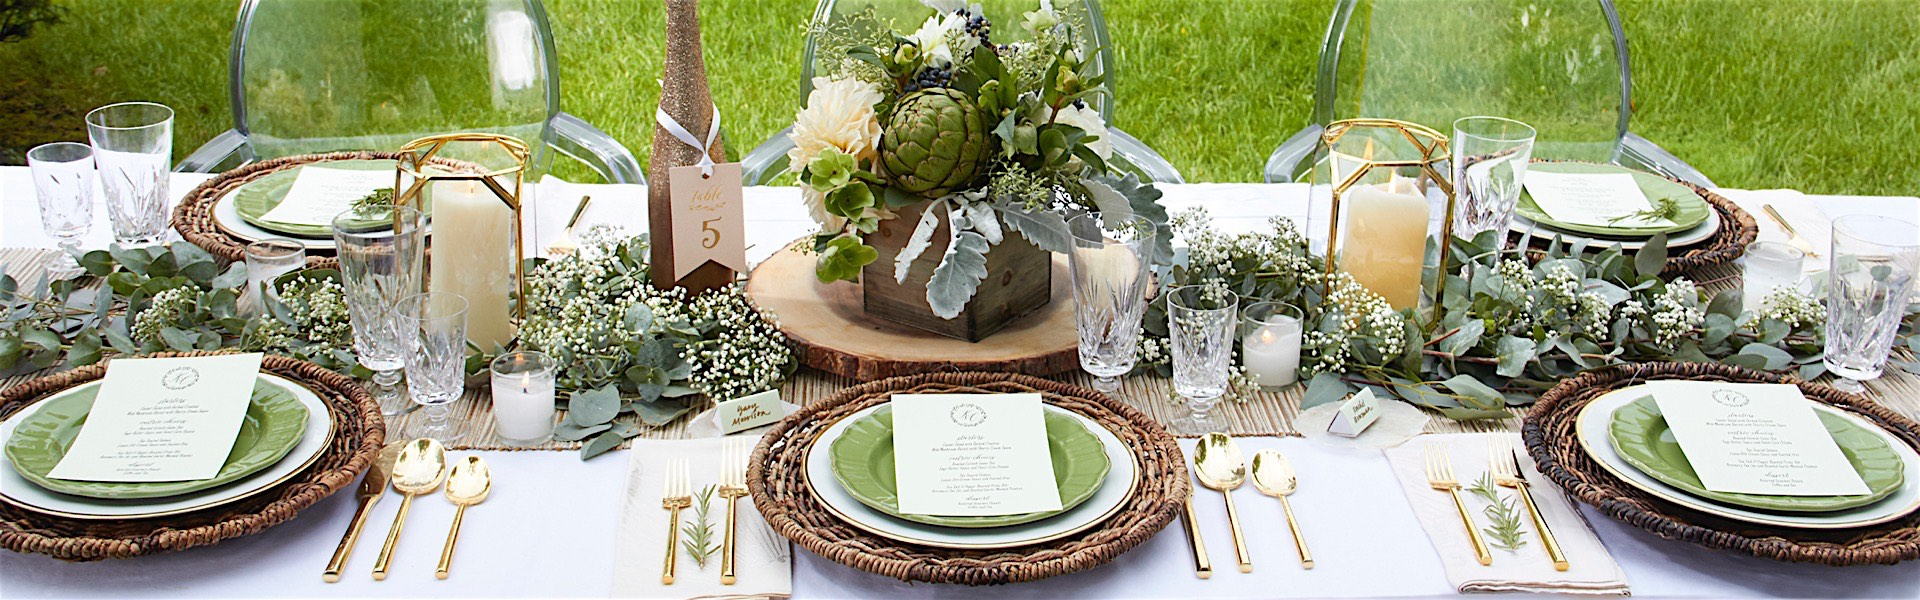 Wedding Ieas: Tablescapes That Are Anything But Boring